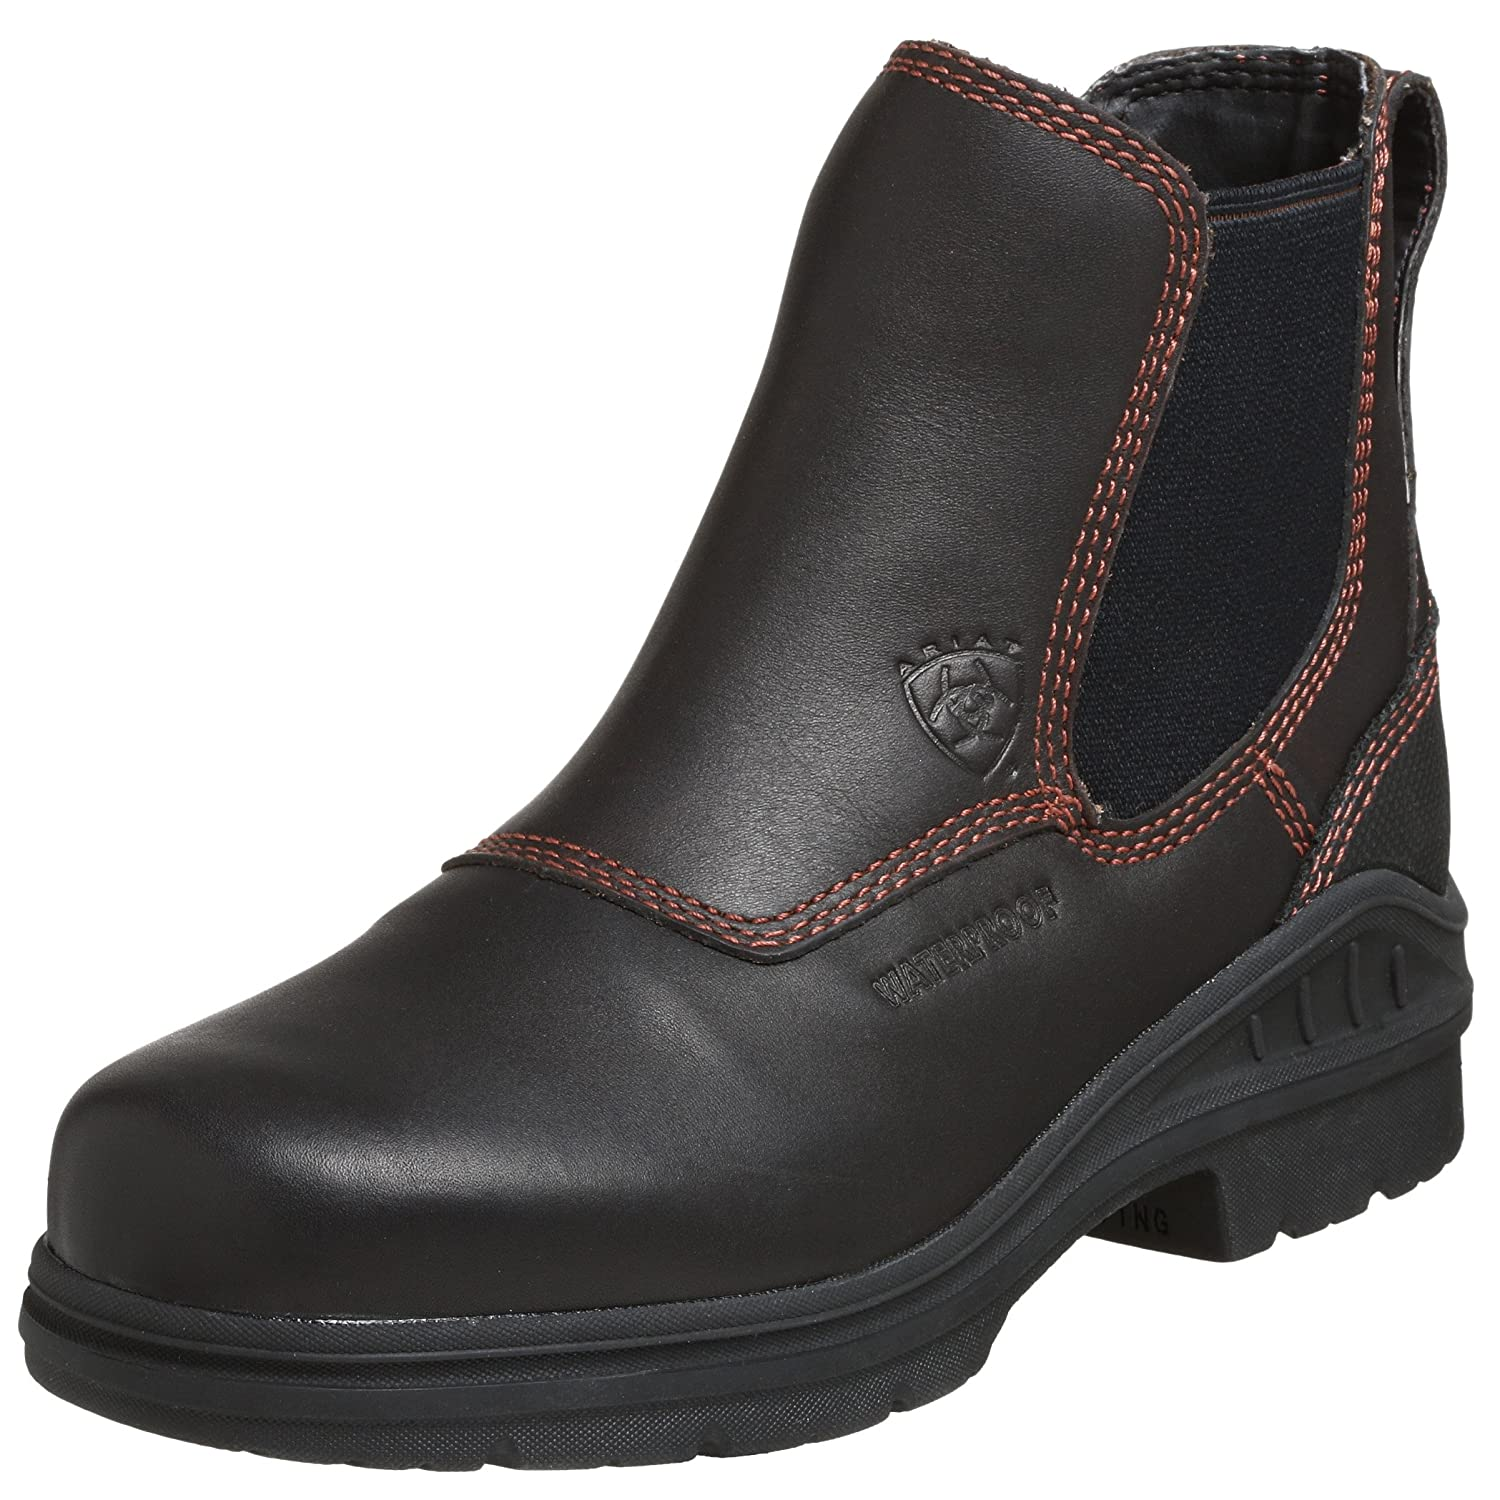 ARIAT Damen Schuhe BARNYARD TWIN GORE H20 wasserdicht Ariat Europe Ltd